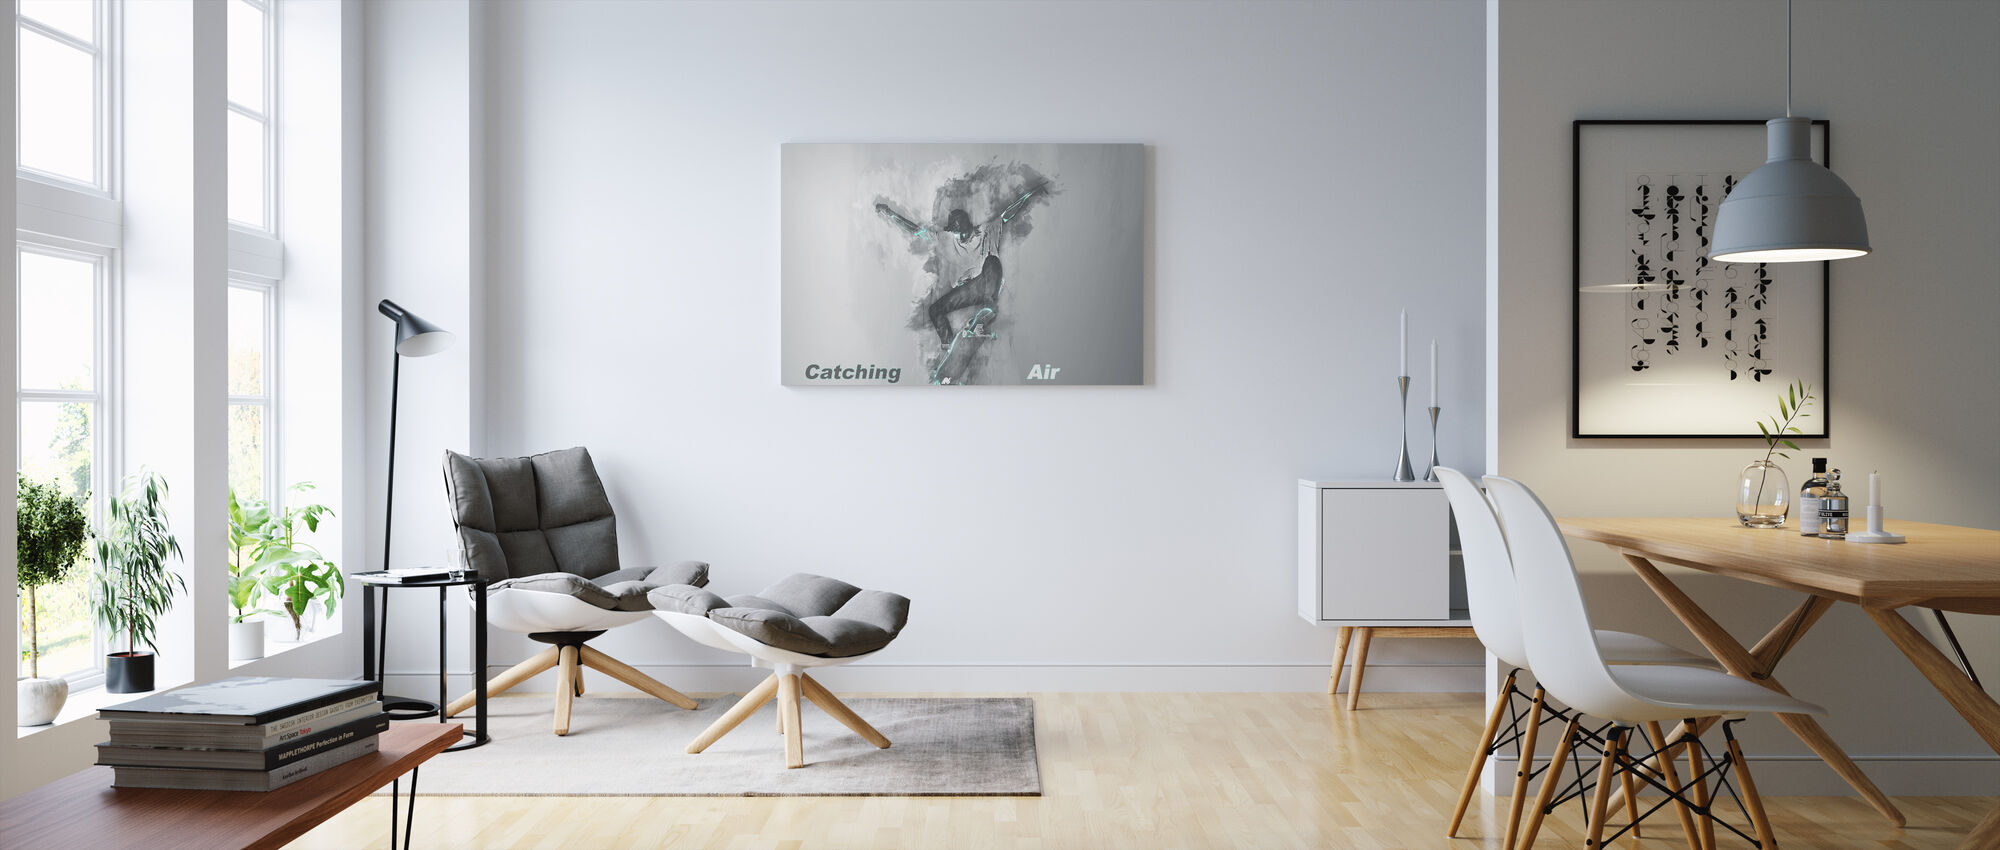 Catching Air - Canvas print - Living Room